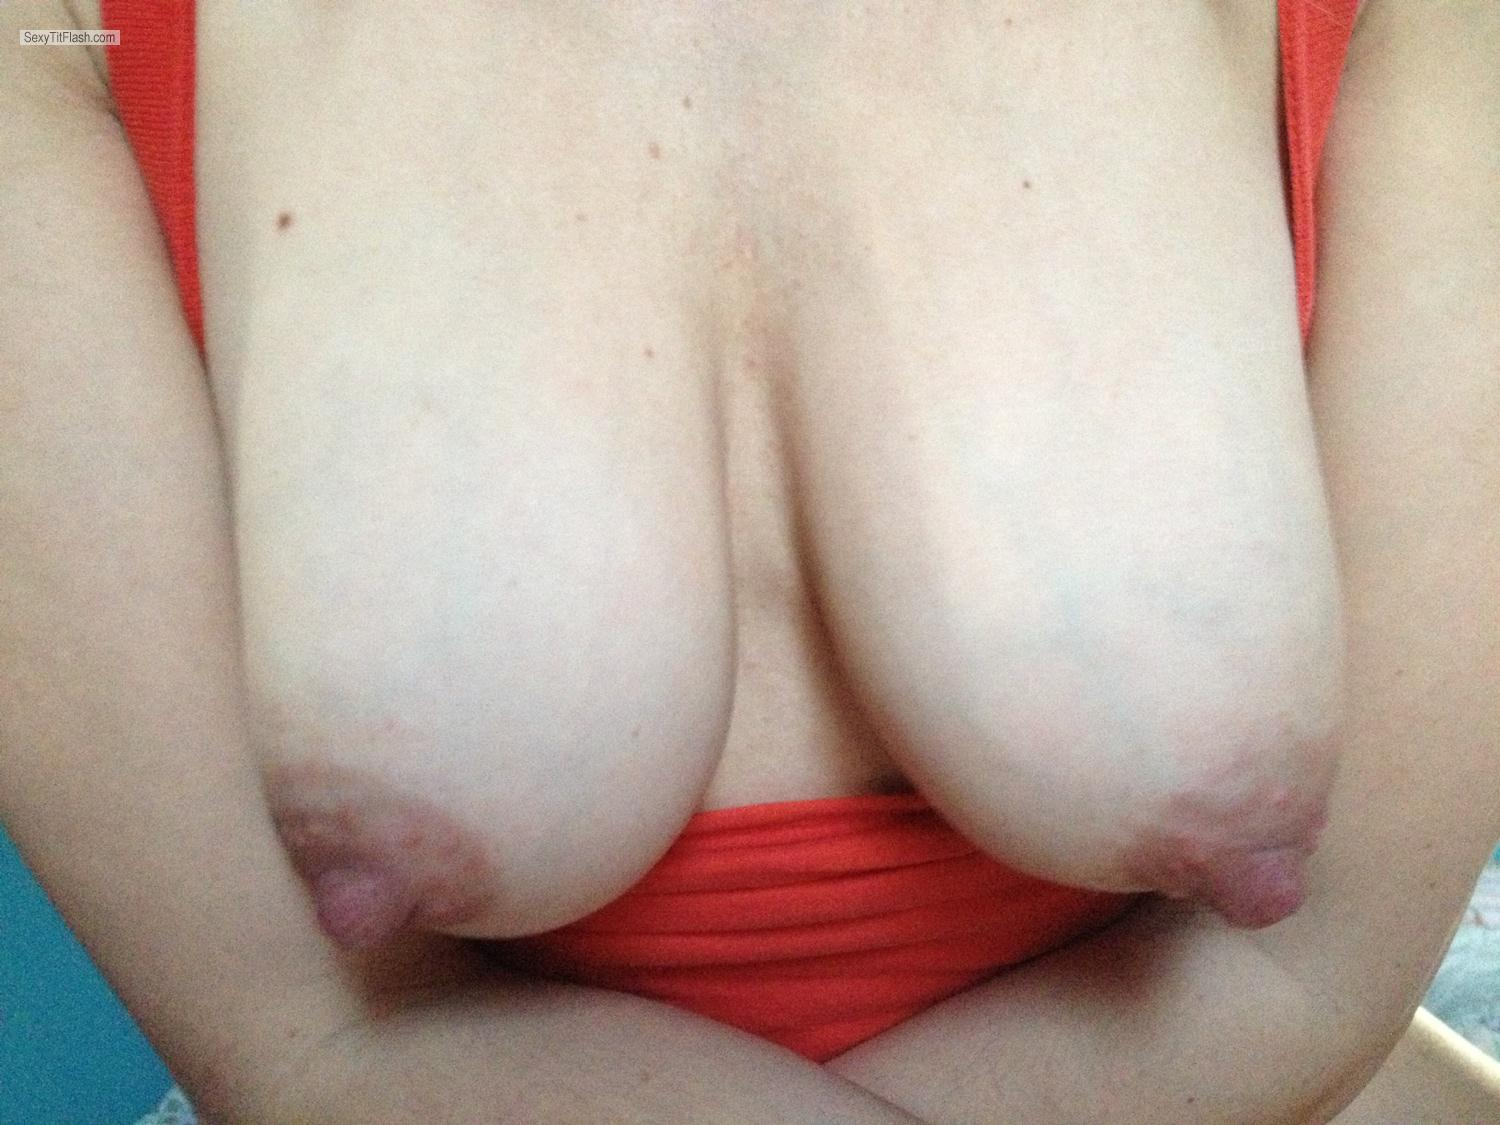 Tit Flash: Medium Tits By IPhone - Shy Milf from United States